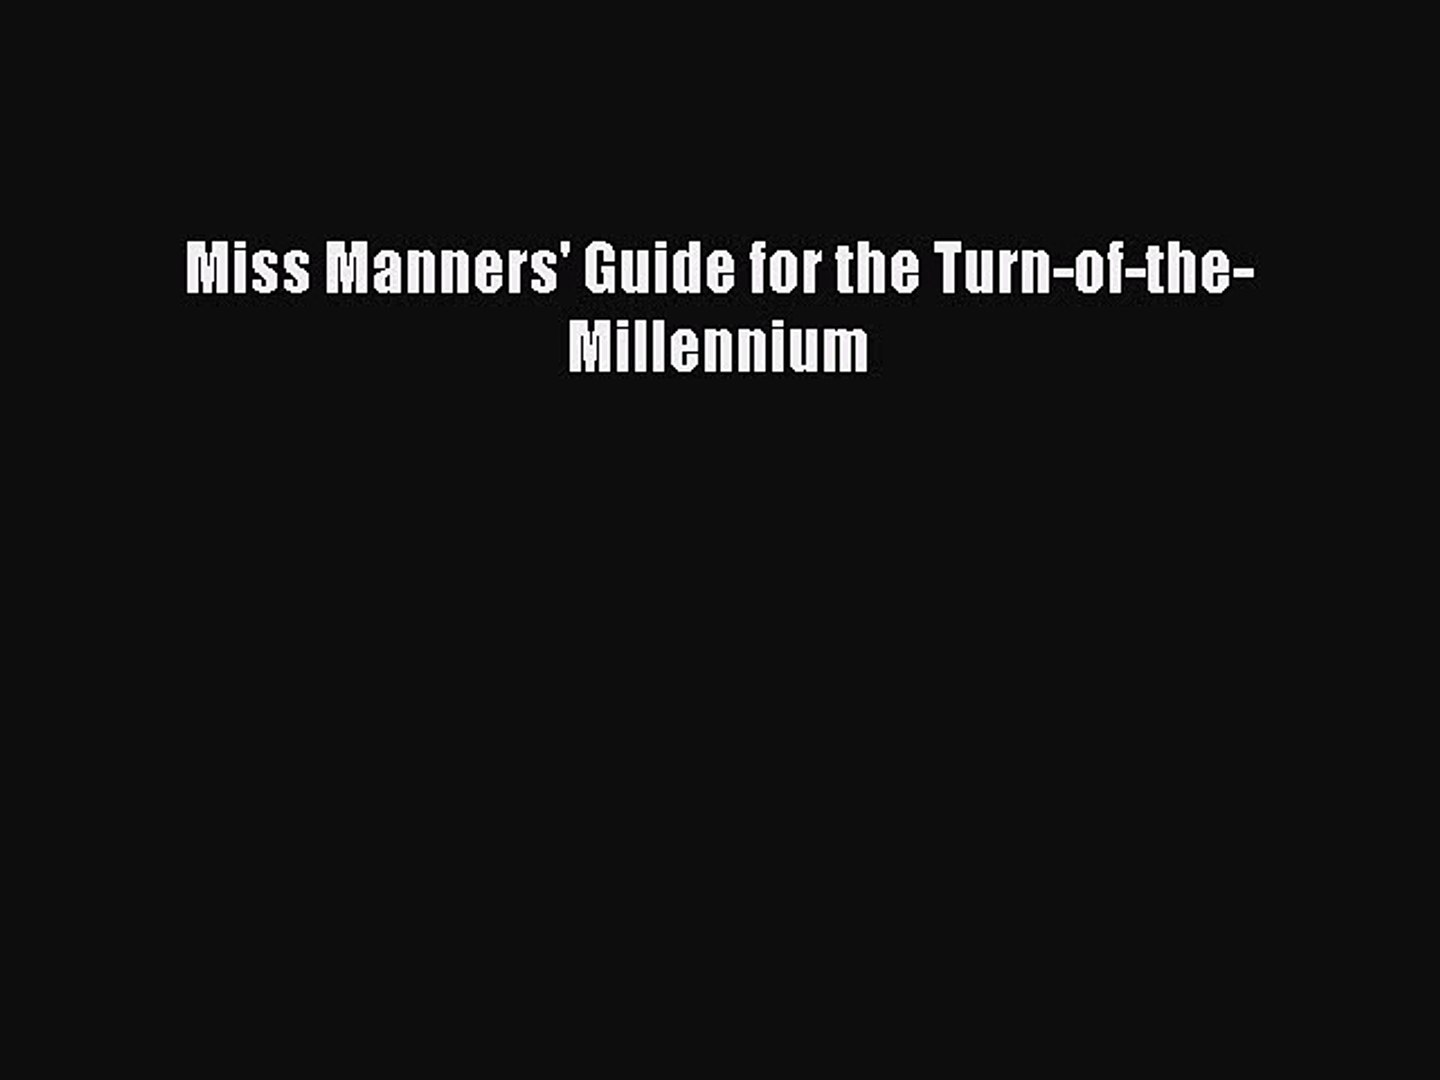 Download Miss Manners' Guide for the Turn-of-the-Millennium Ebook Online